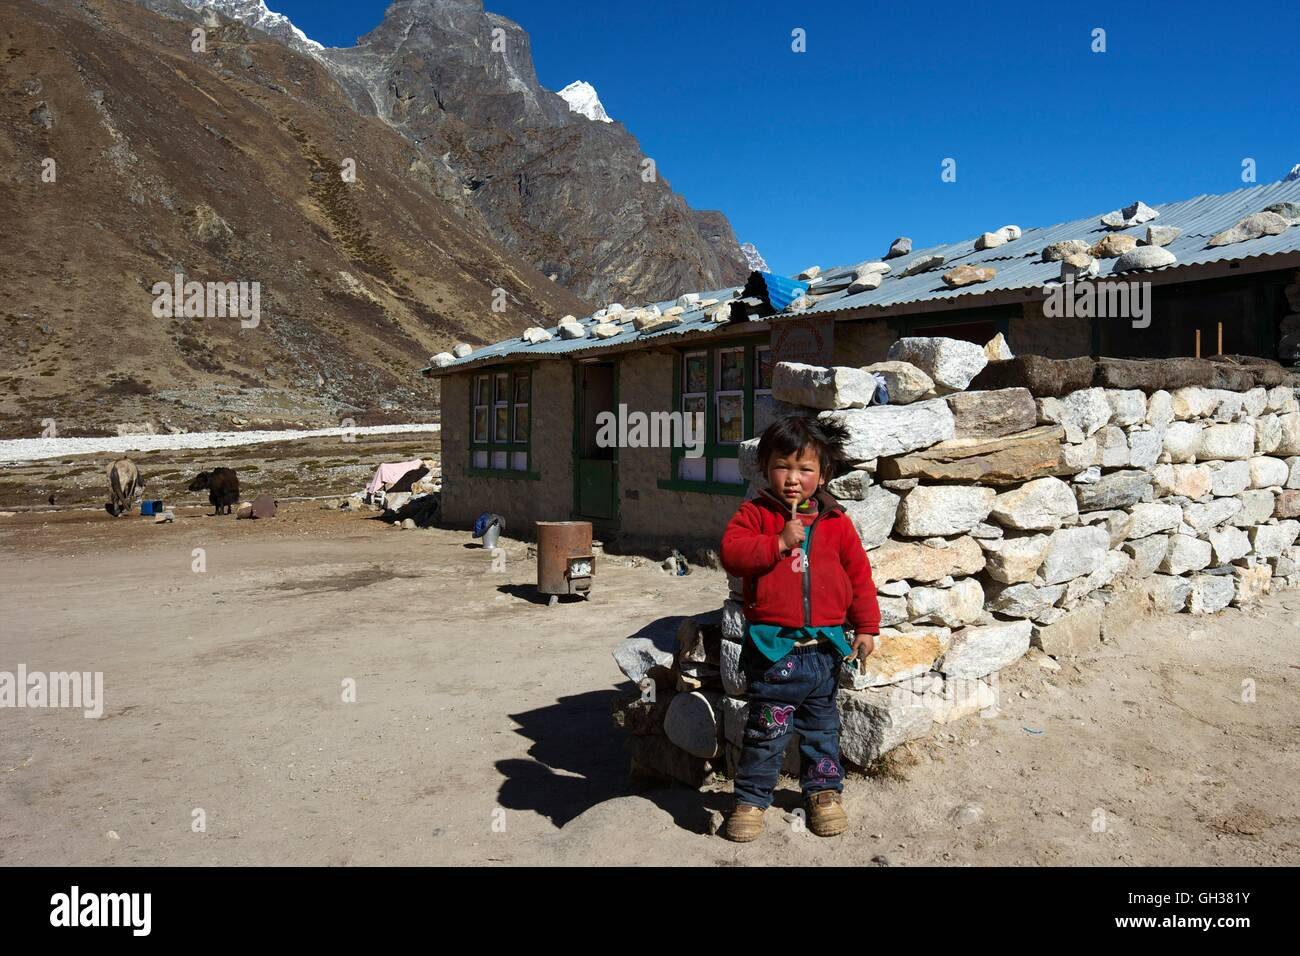 Young Nepali boy in Pheriche, Sagarmatha National Park, Solukhumbu District, Nepal, Asia - Stock Image